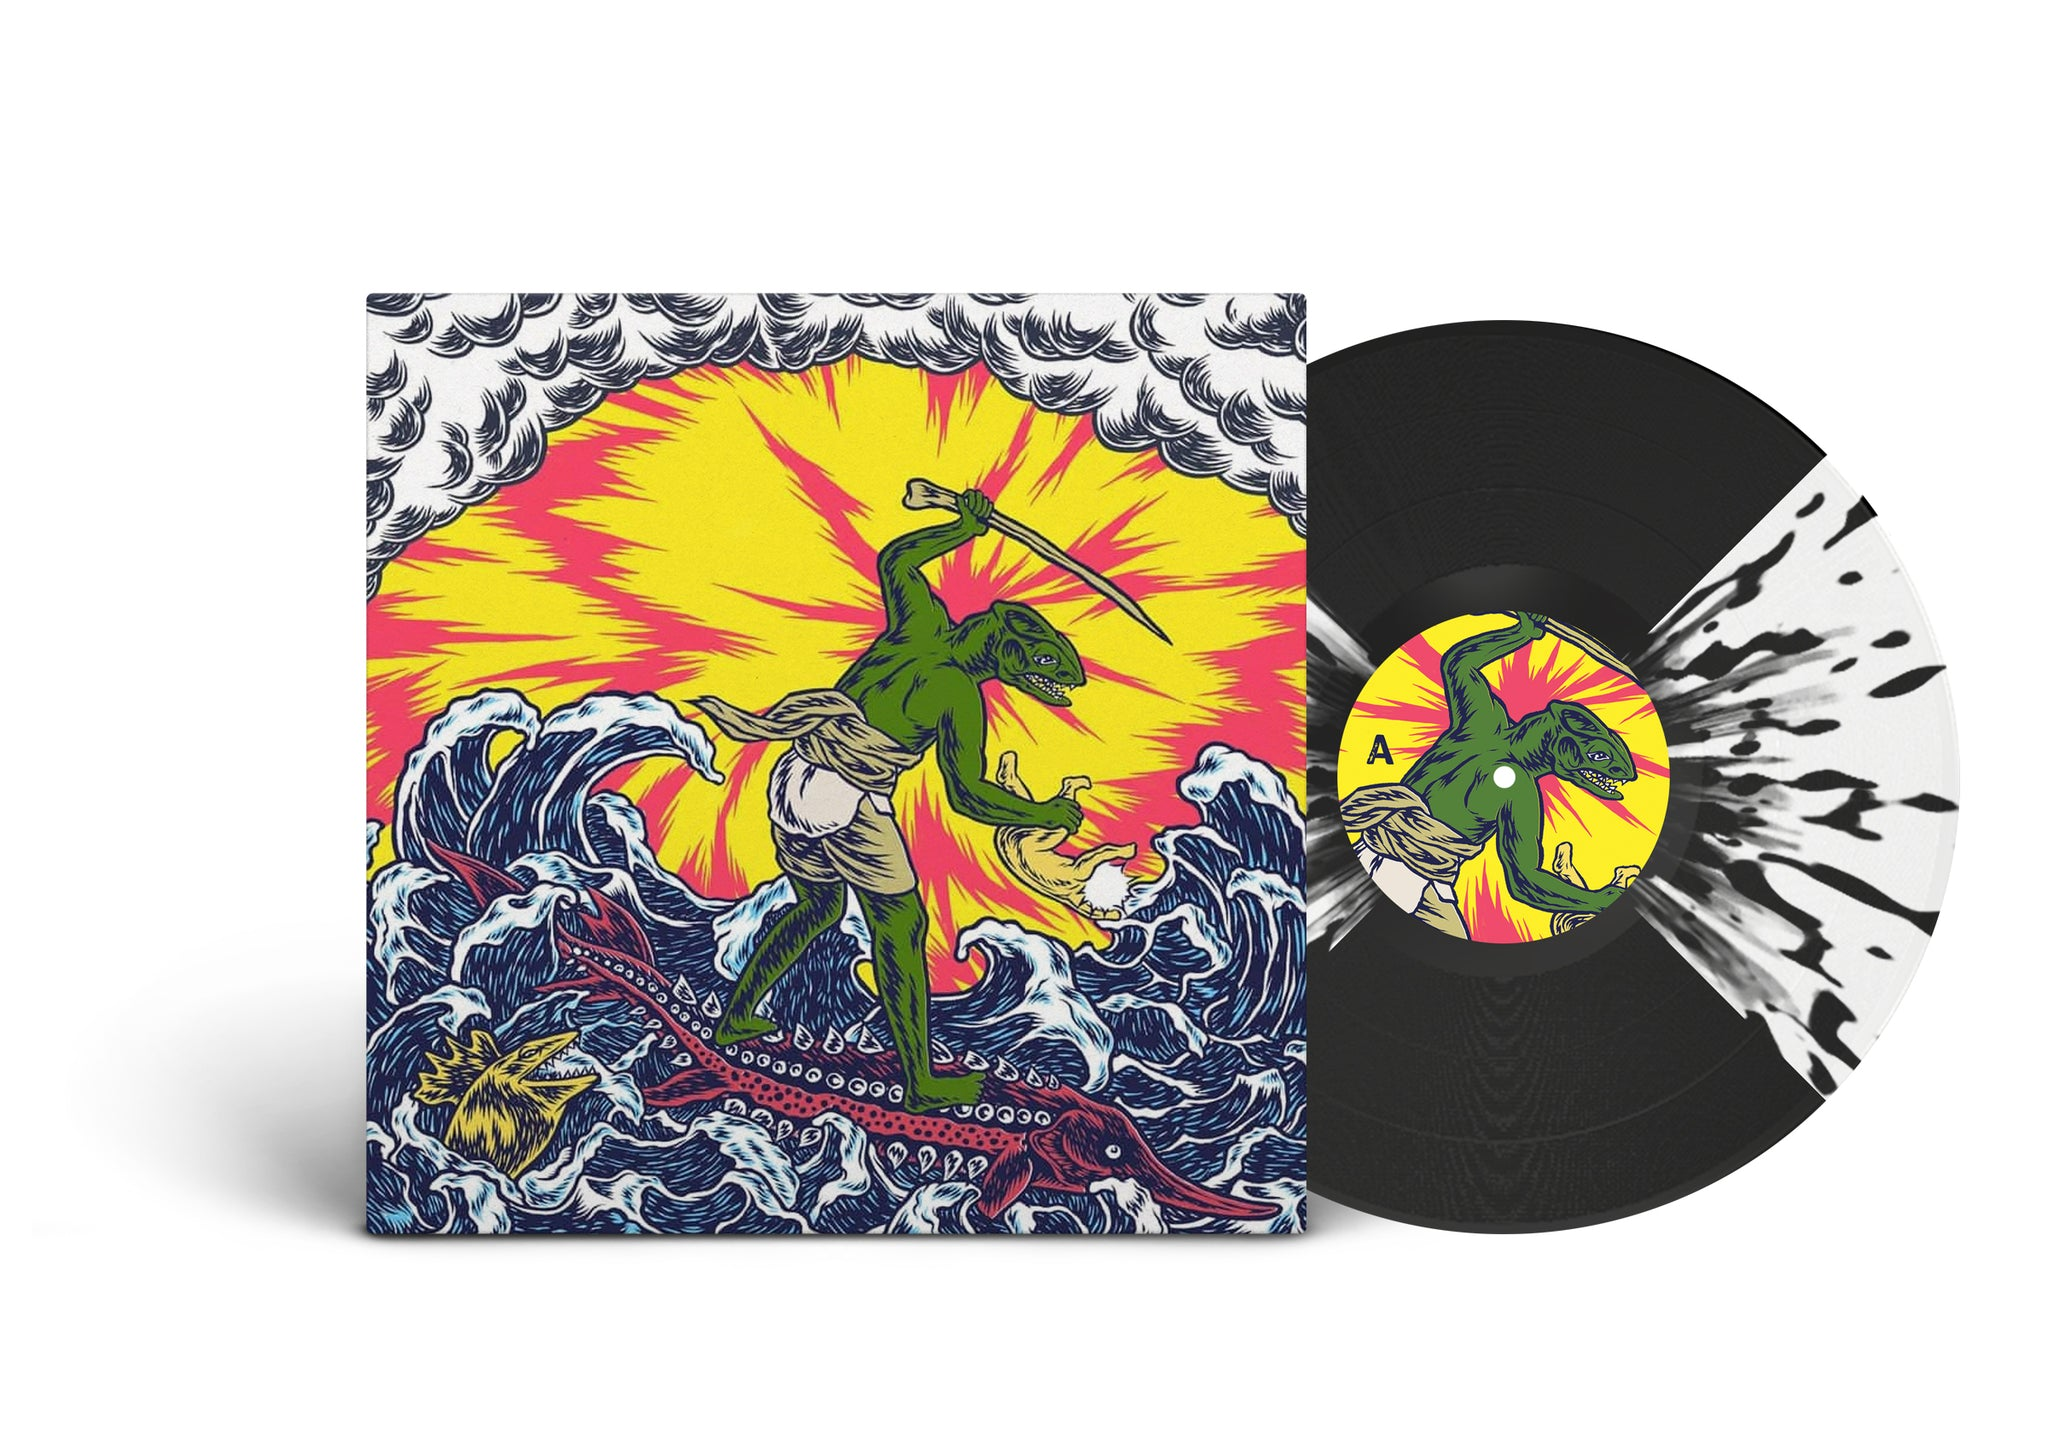 Teenage Gizzard Ants and Bats LP (Bootleg by Needlejuice Records)